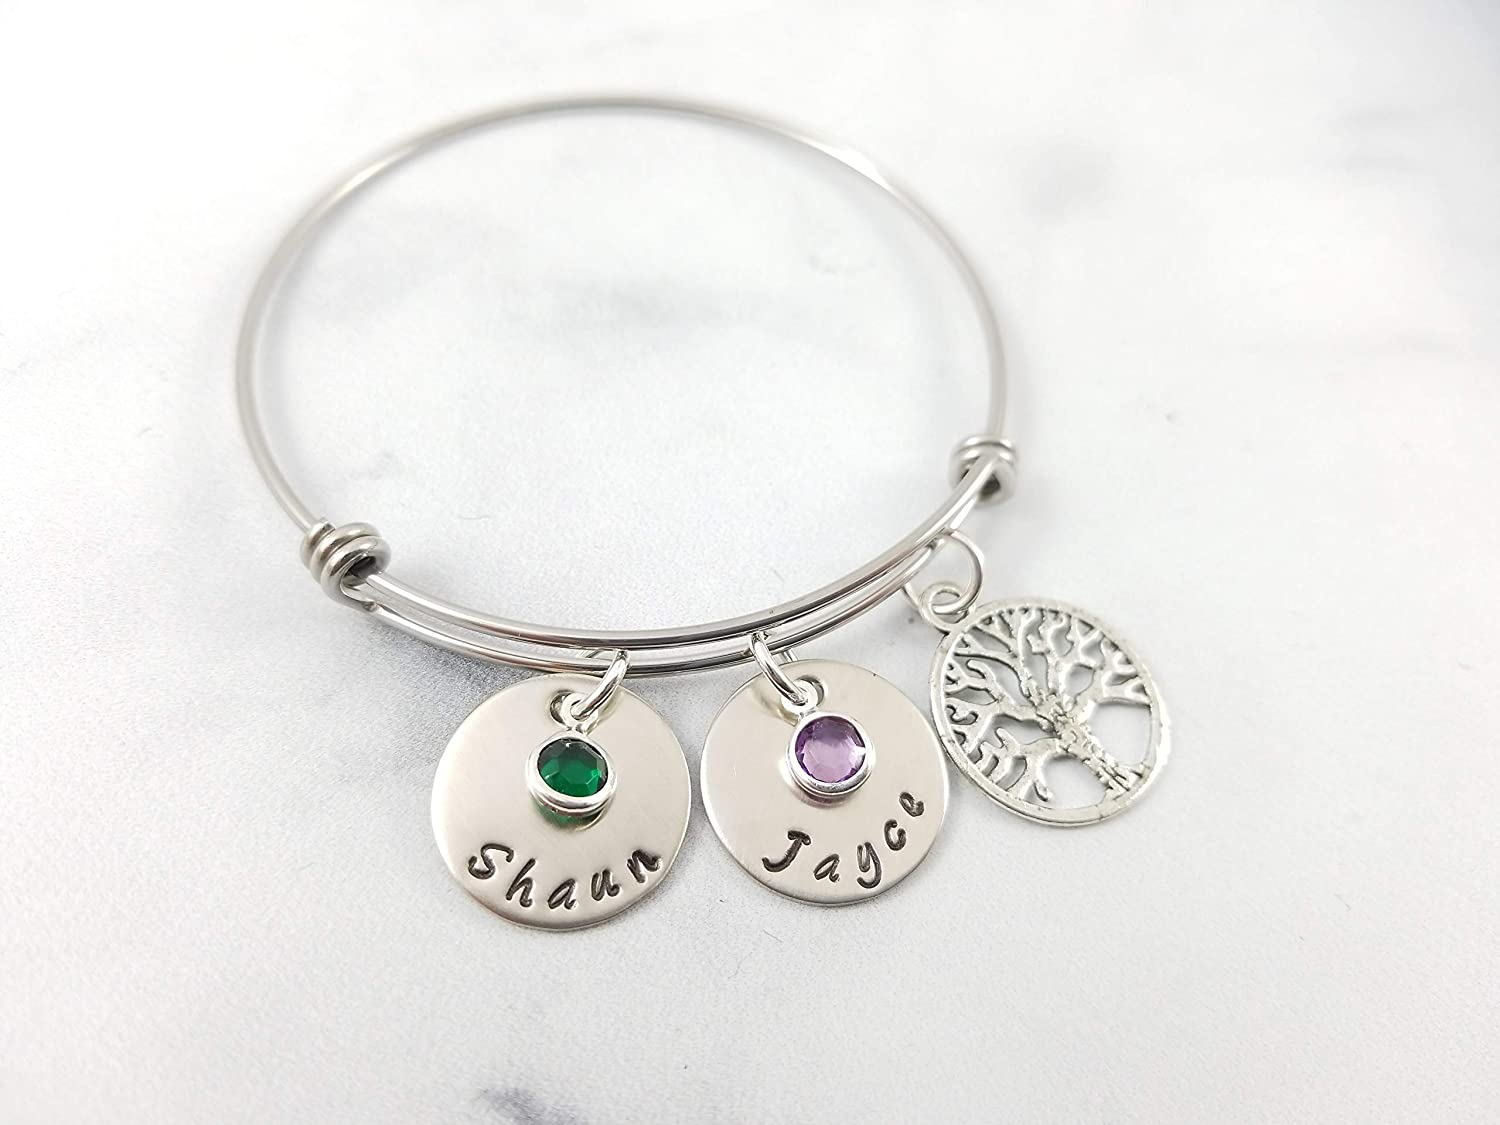 kaululu Mother Birthstone Bracelet for Women Charms Link Personalized 2 to 6 Birthstone Bracelet with Family Names Rhodium Plated Bracelet for Grandmother